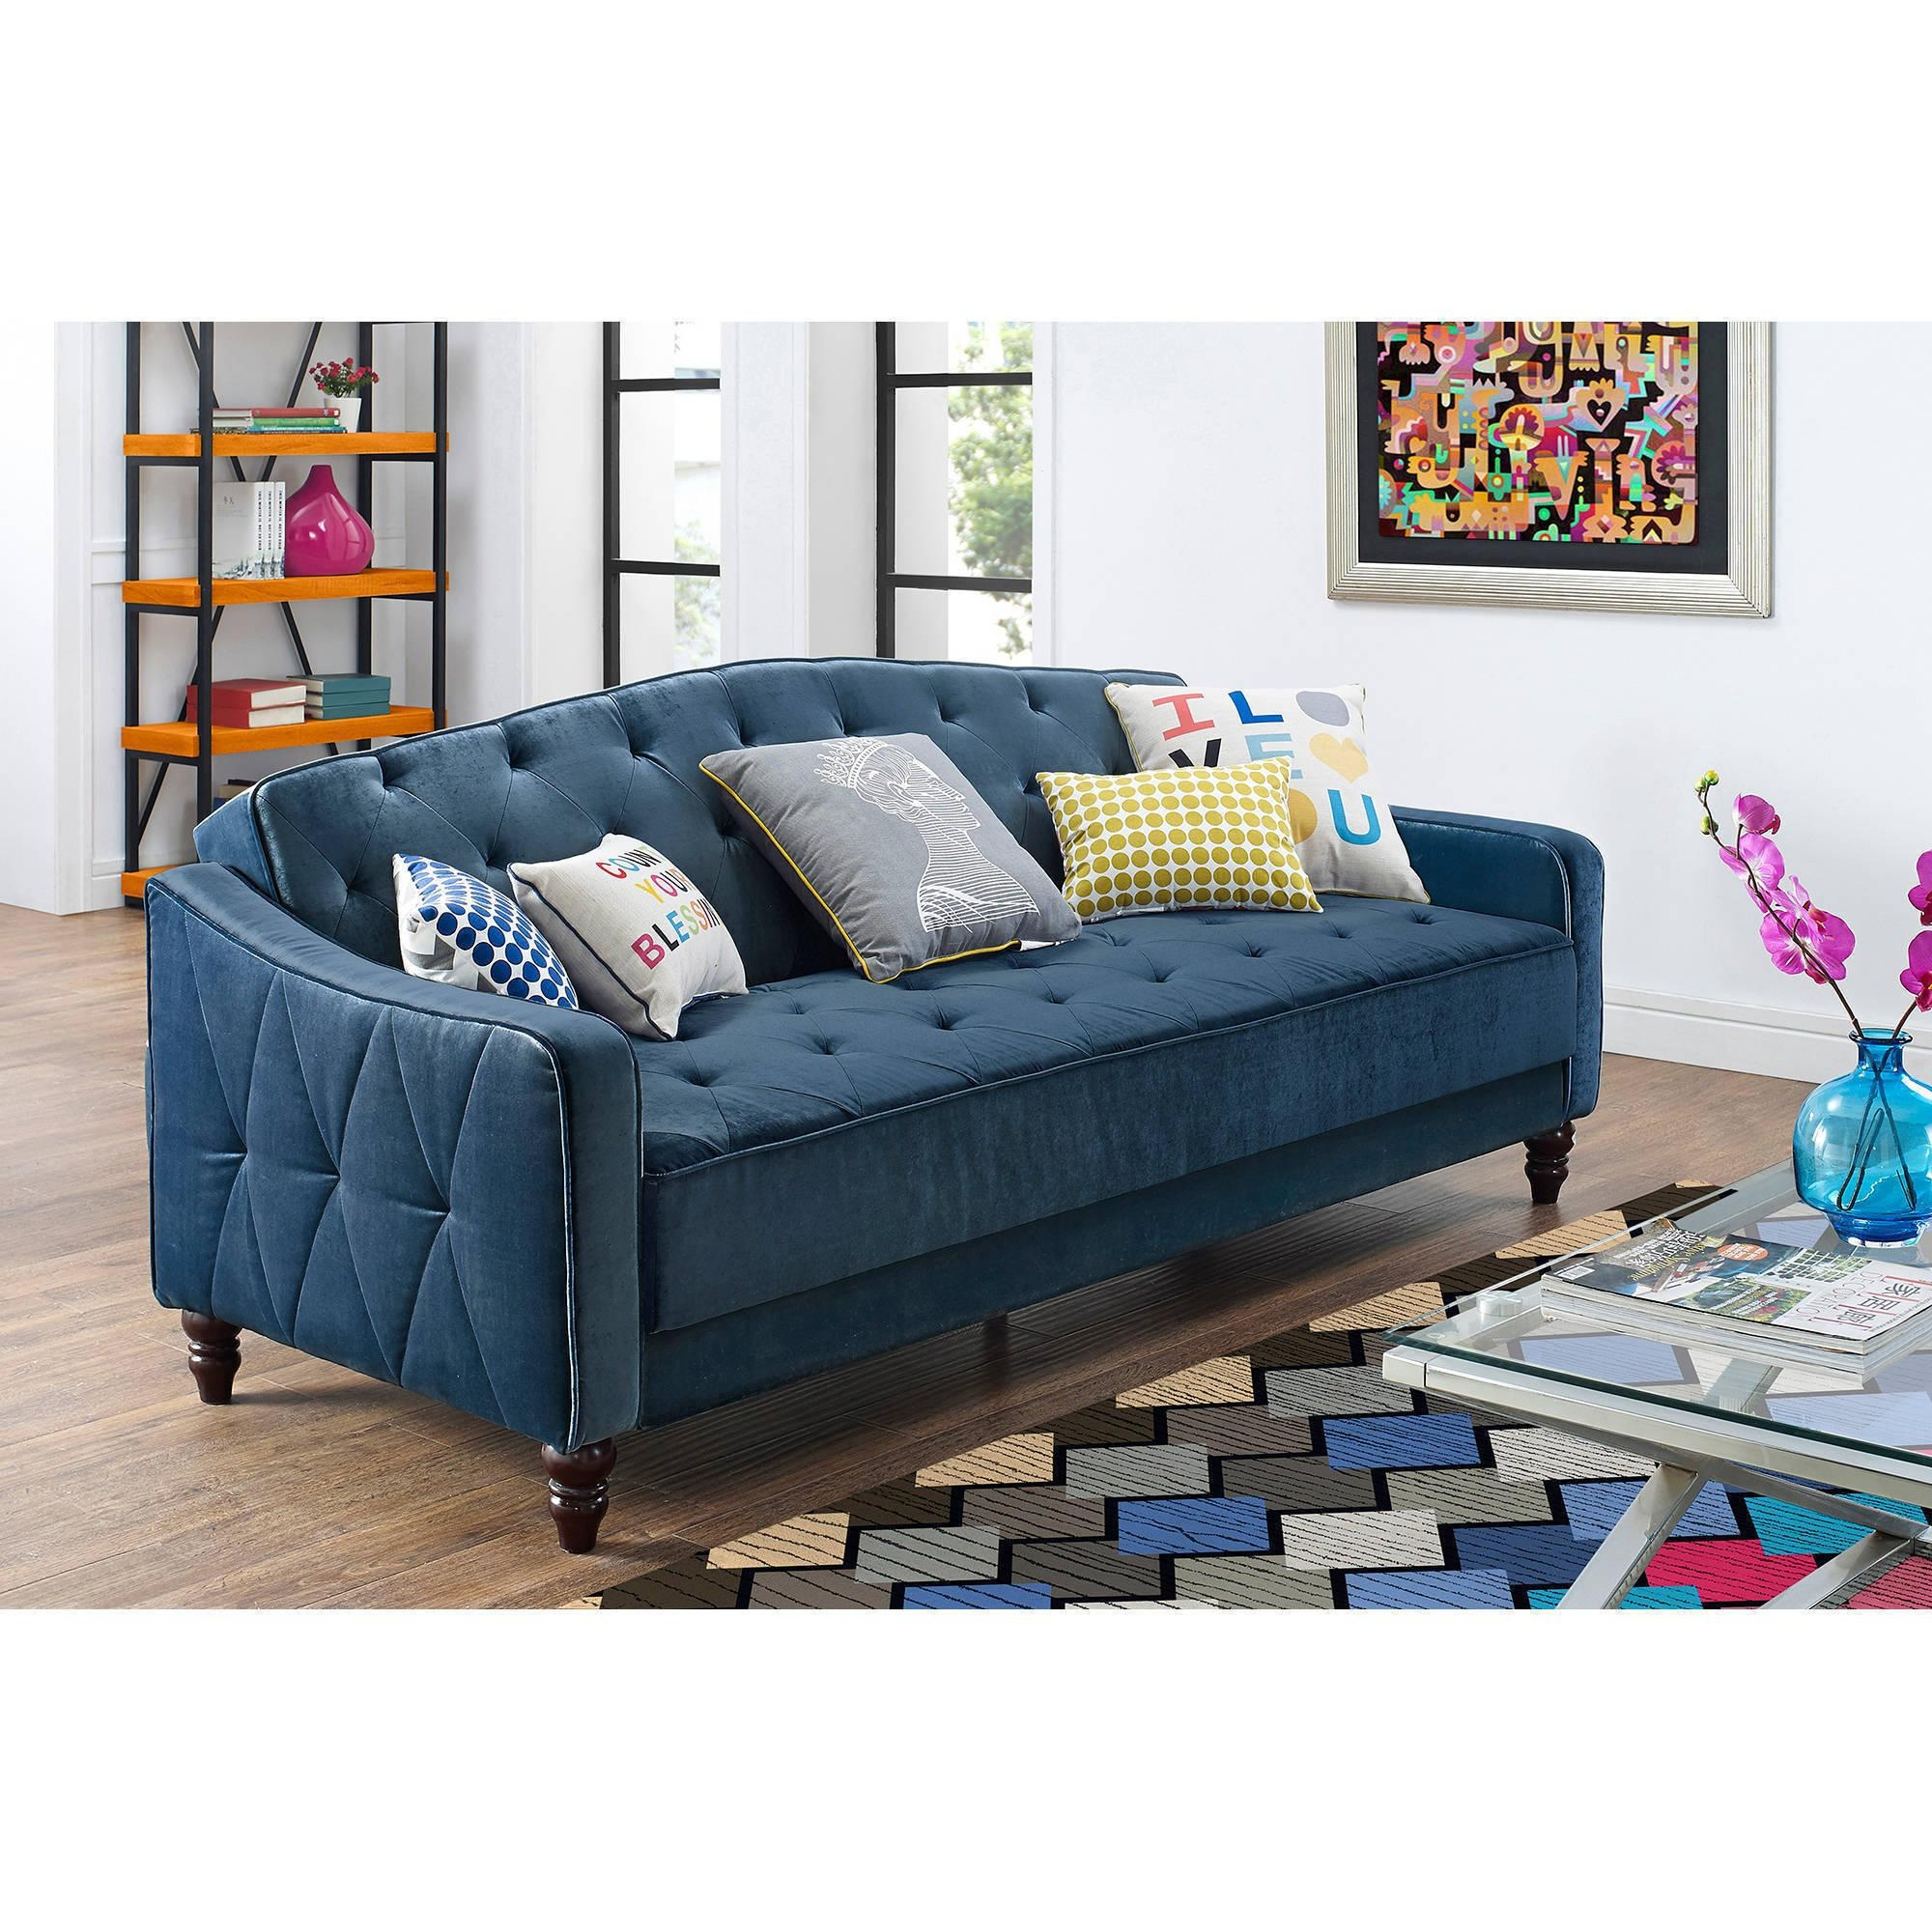 Futons, Futon Beds, Sofa Beds – Walmart In Futon Couch Beds (Image 14 of 20)